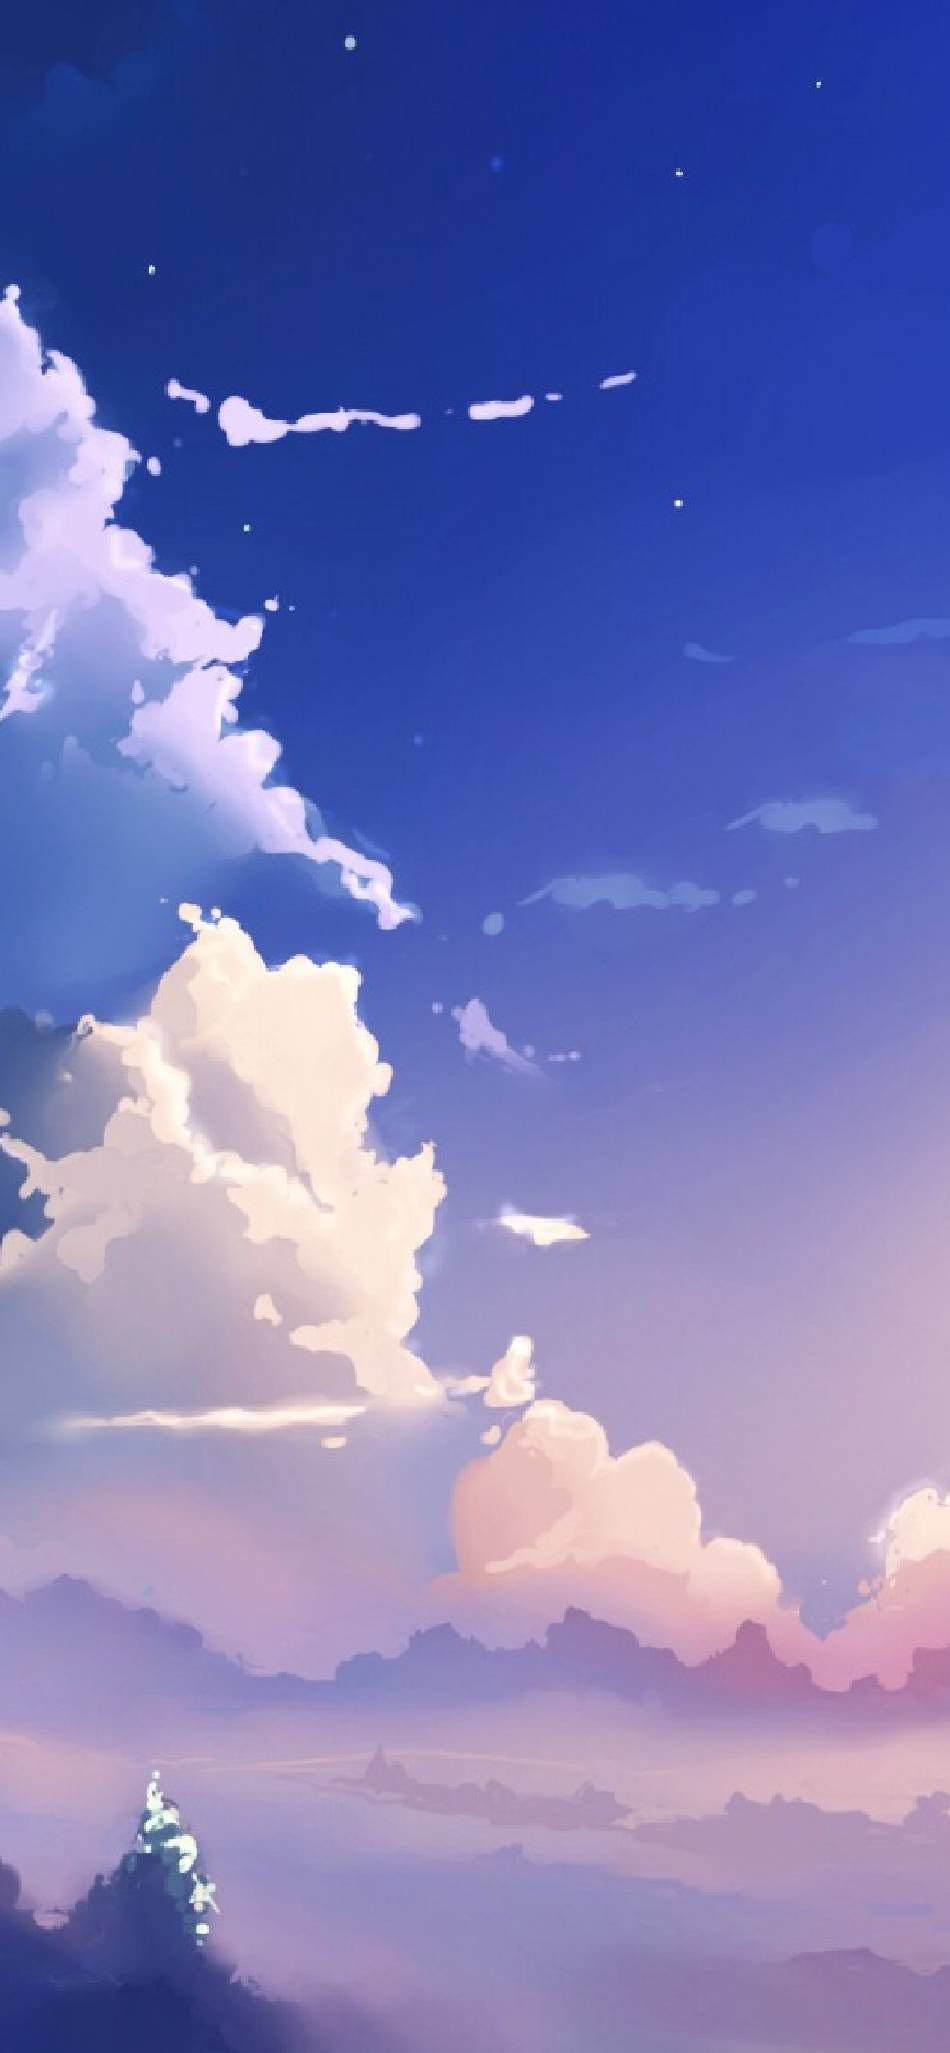 Anime Sky Sky Anime Landscape Paintings Baby Blue Wallpaper Aesthetic anime clouds wallpaper